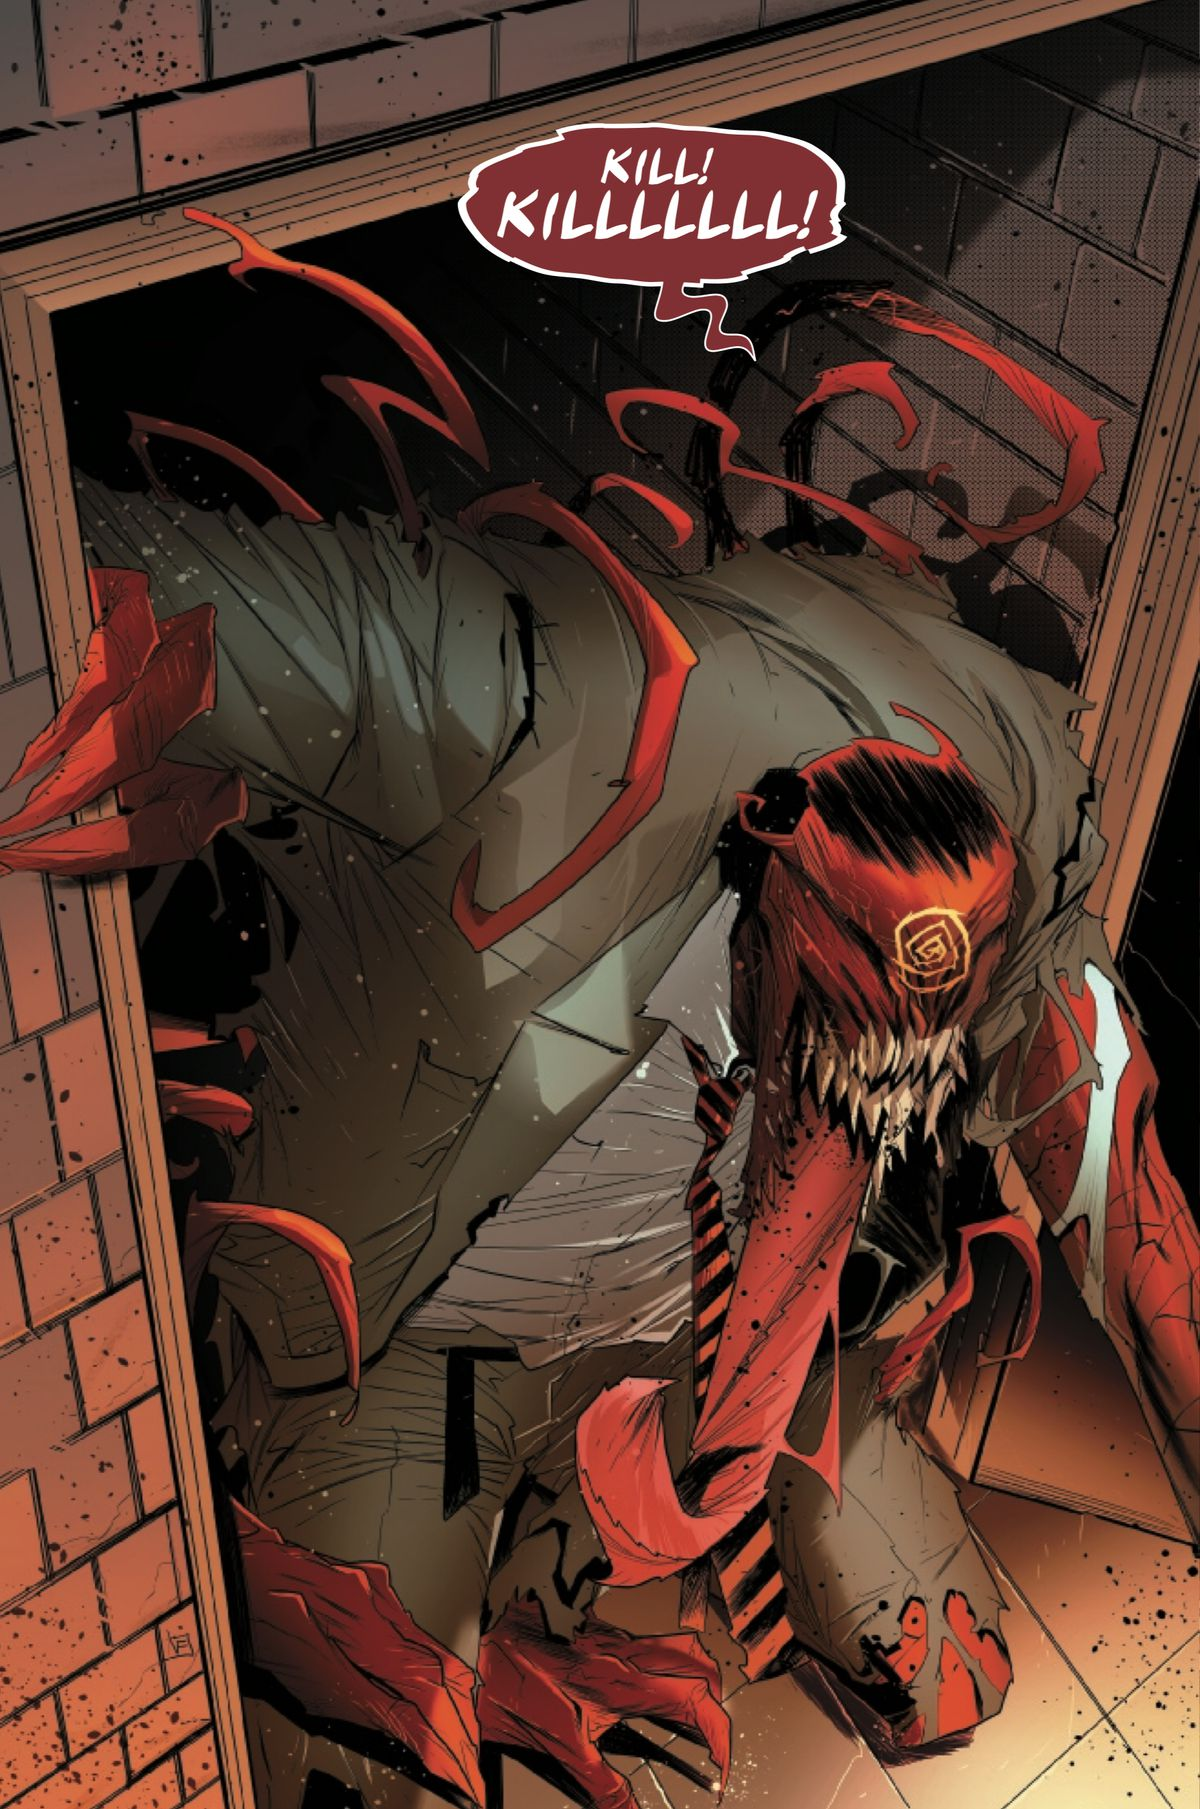 J. Jonah Jameson is transformed by a Carnage-controlled symbiote, into a slavering red symbiote monster in a business suit and tie, in Absolute Carnage: Miles Morales #3, Marvel Comics 92019).